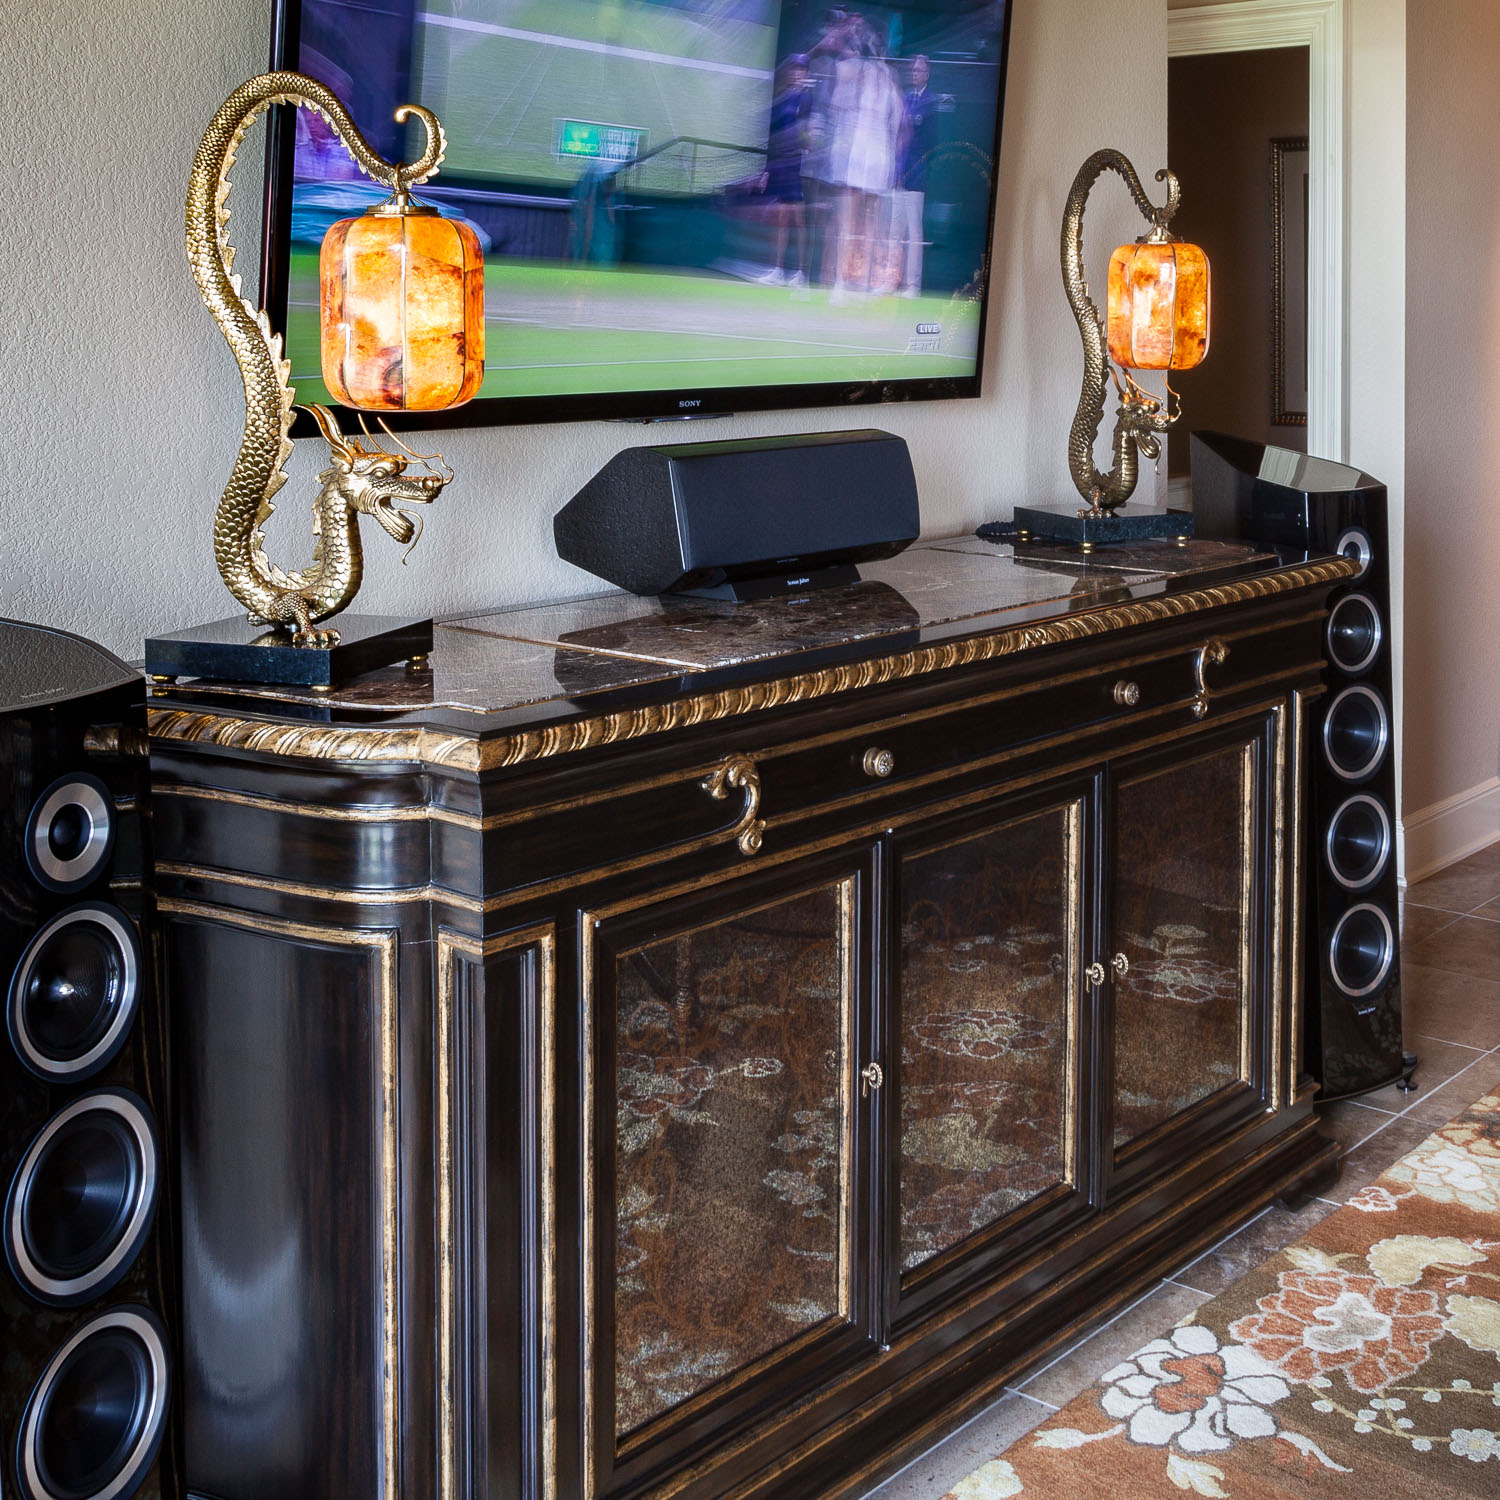 The Sonus Faber Veneres are beautiful with the grilles removed.